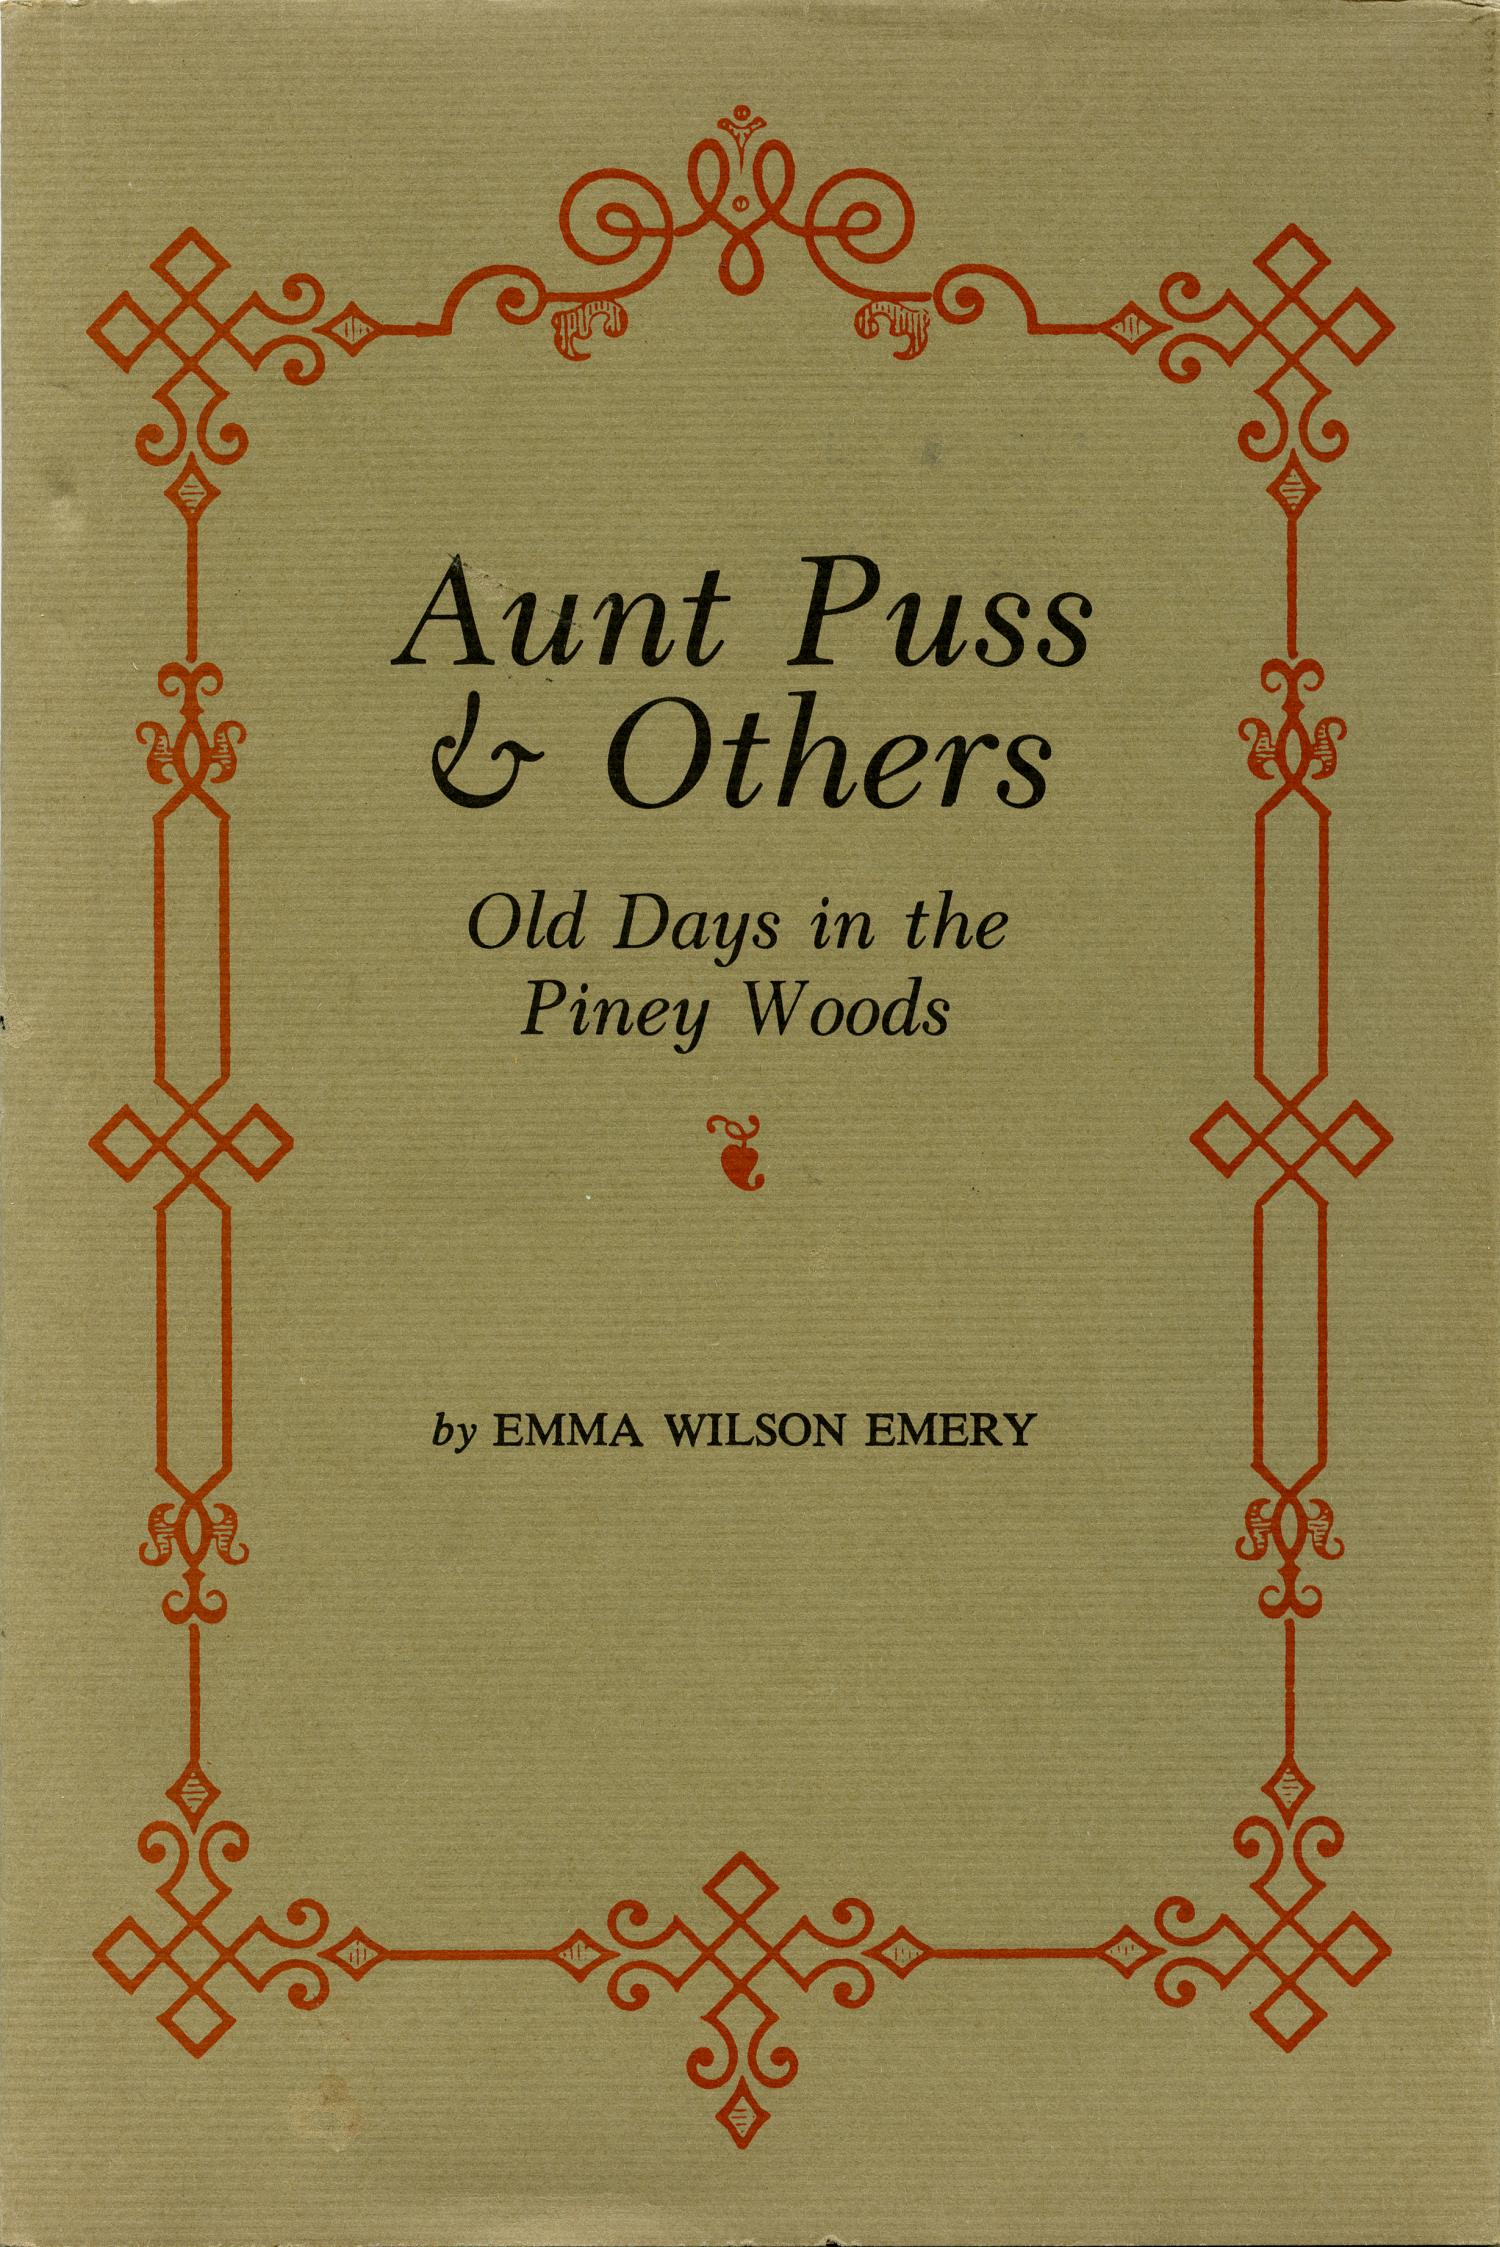 Aunt Puss & Others: Old Days in the Piney Woods                                                                                                      Front Cover